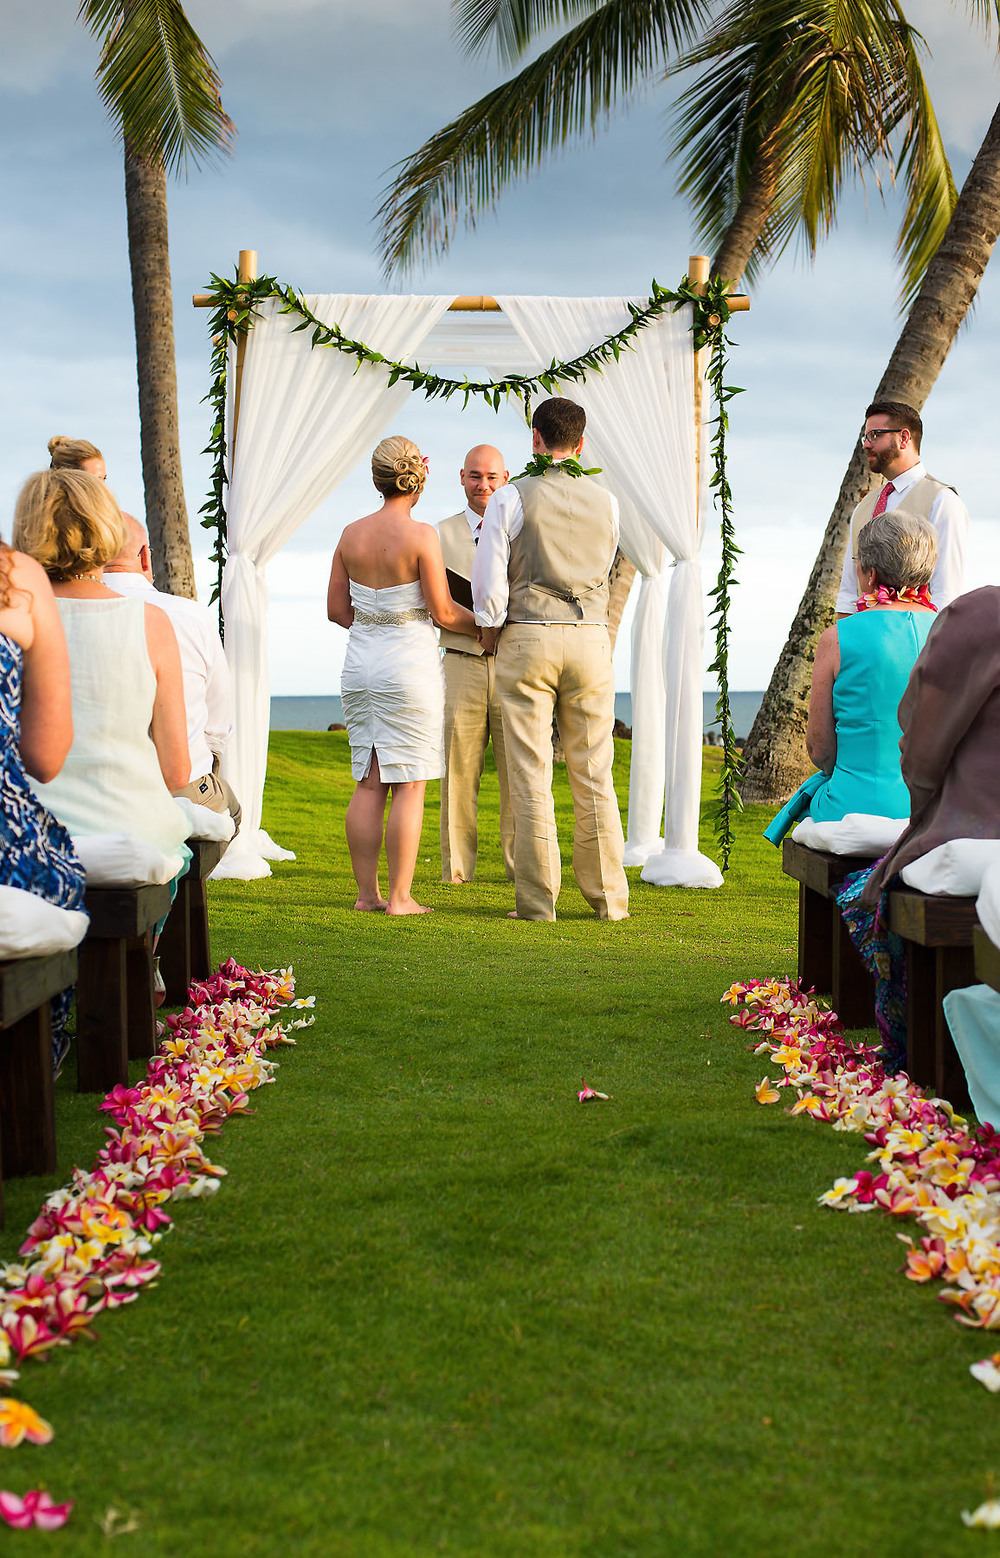 Beach Wedding Ceremony - the ceremony with a beach themed wedding is important to consider, think about how many guests you will have and what time of day you want the ceremony to be